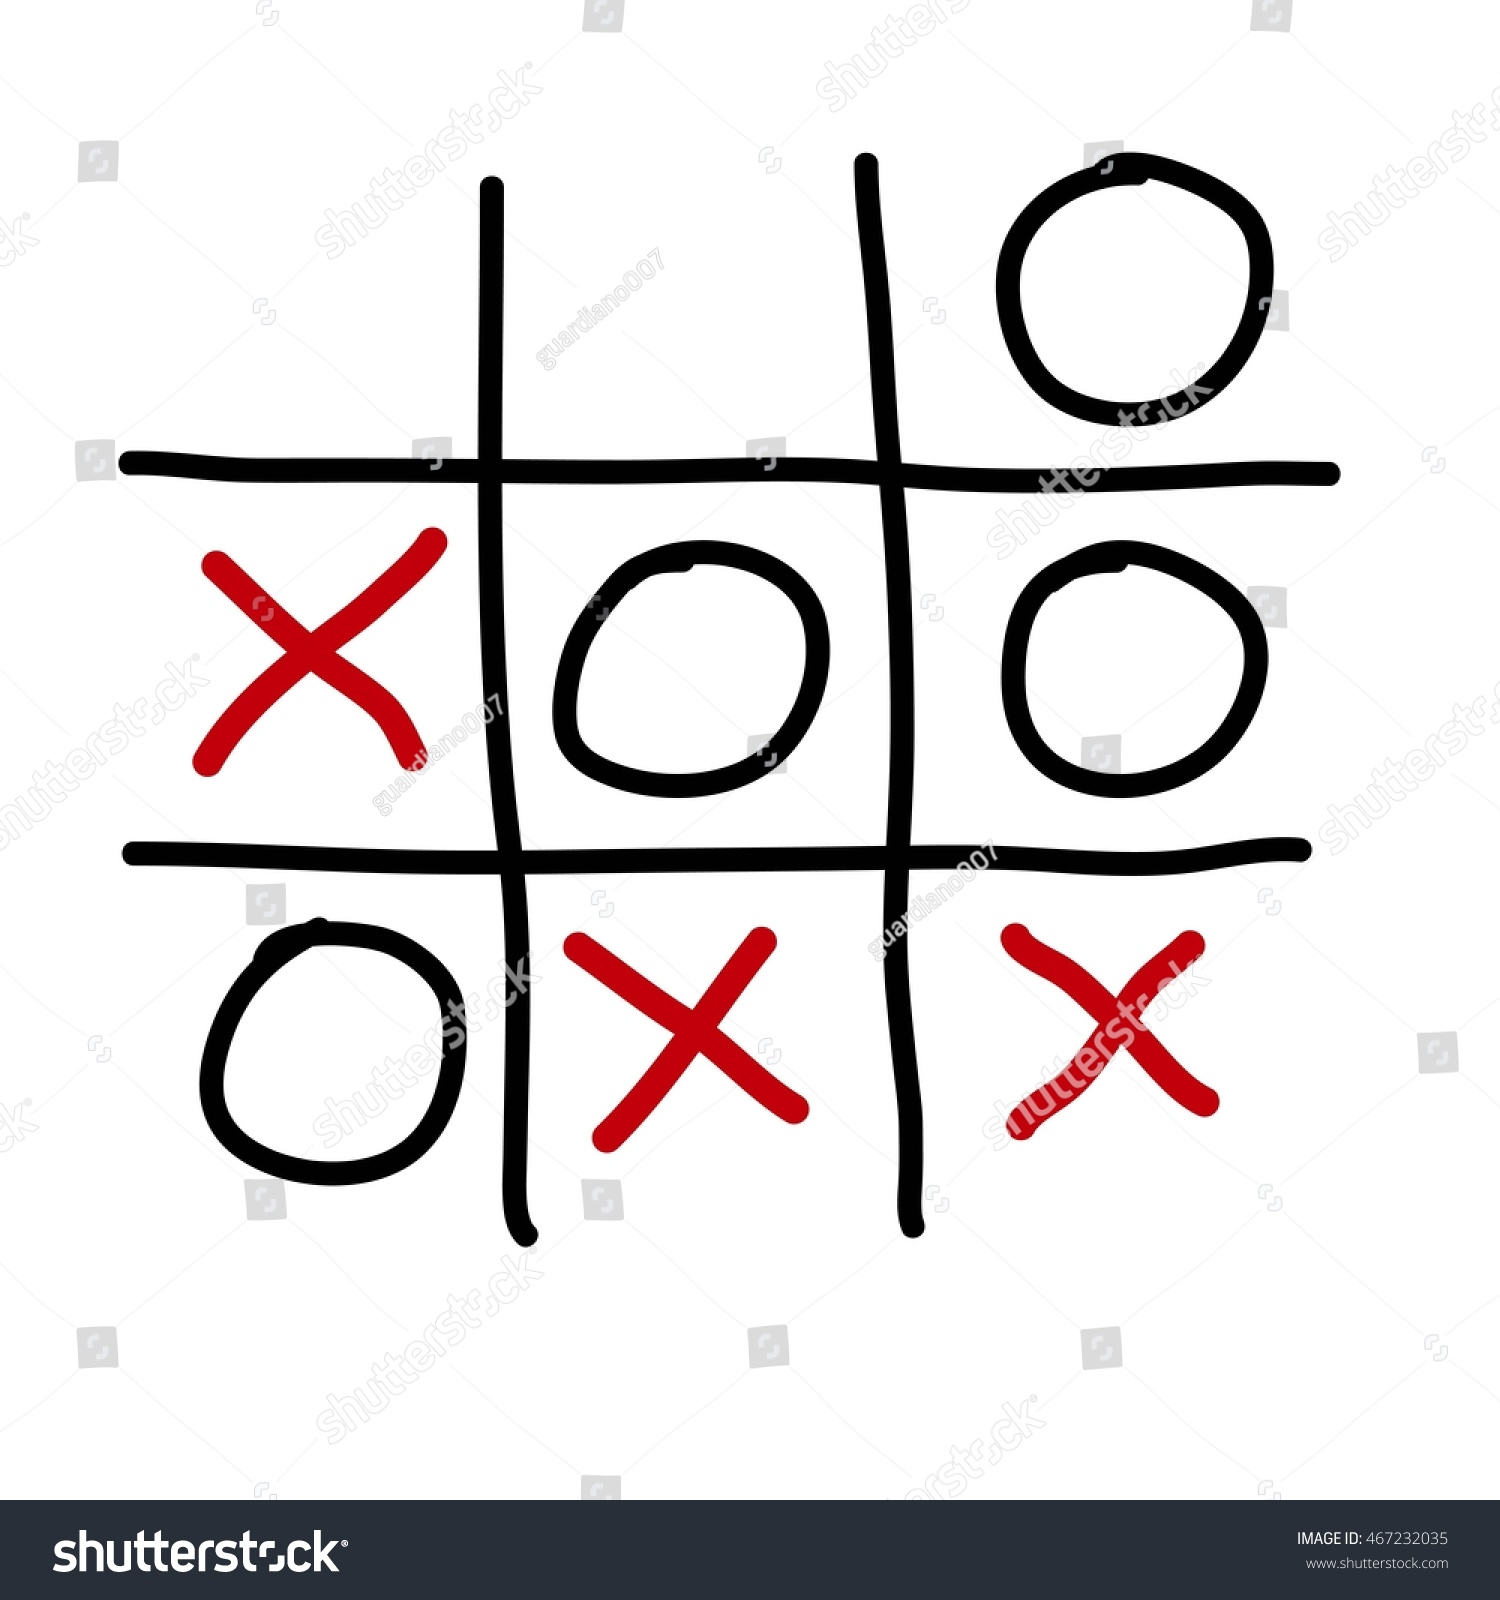 Tic Tac Toe Xo Game On Stock Illustration 467232035 - Shutterstock